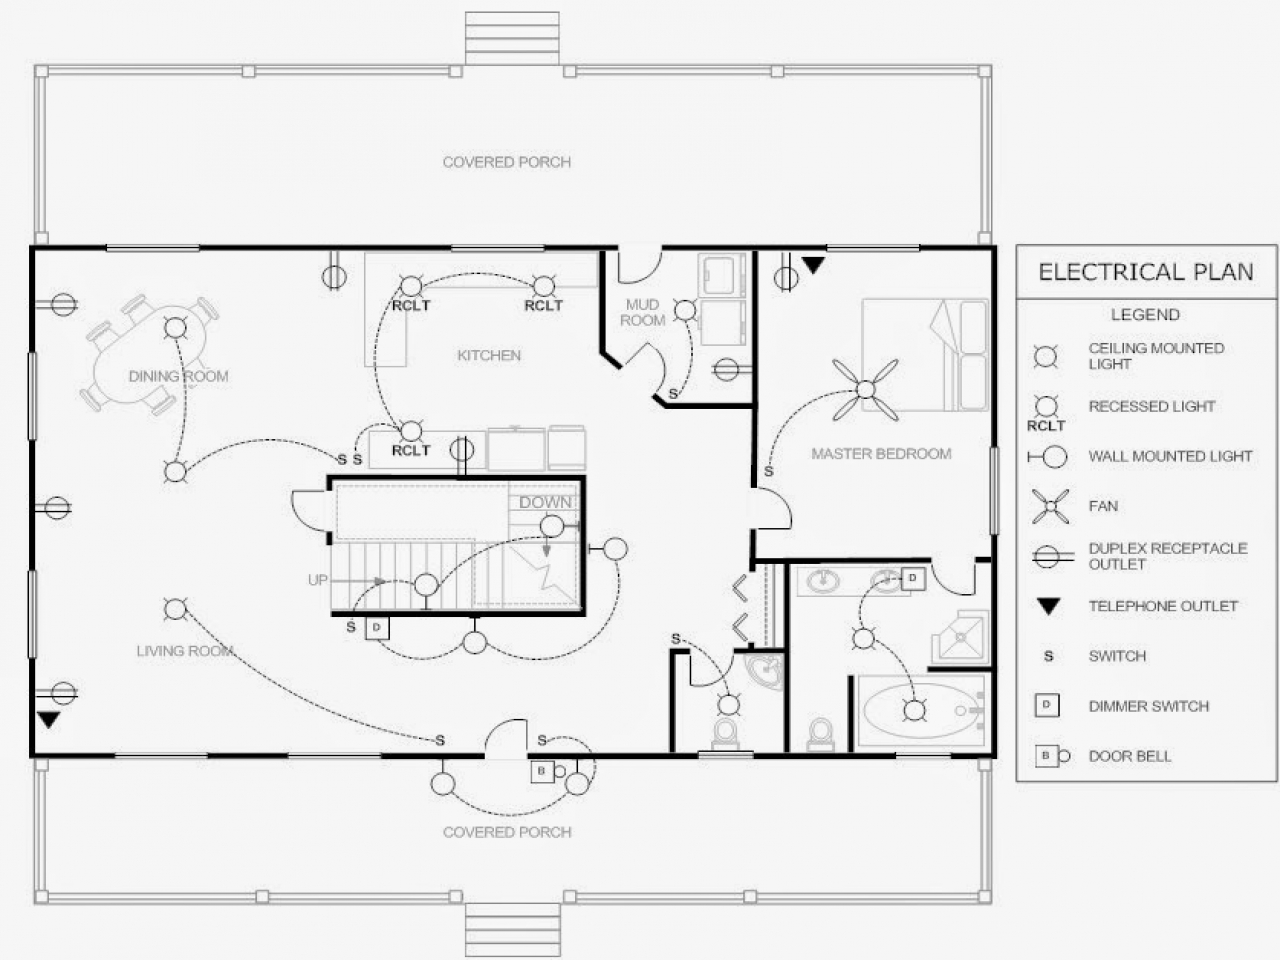 Electrical Floor Plan Drawing Electrical Blueprints